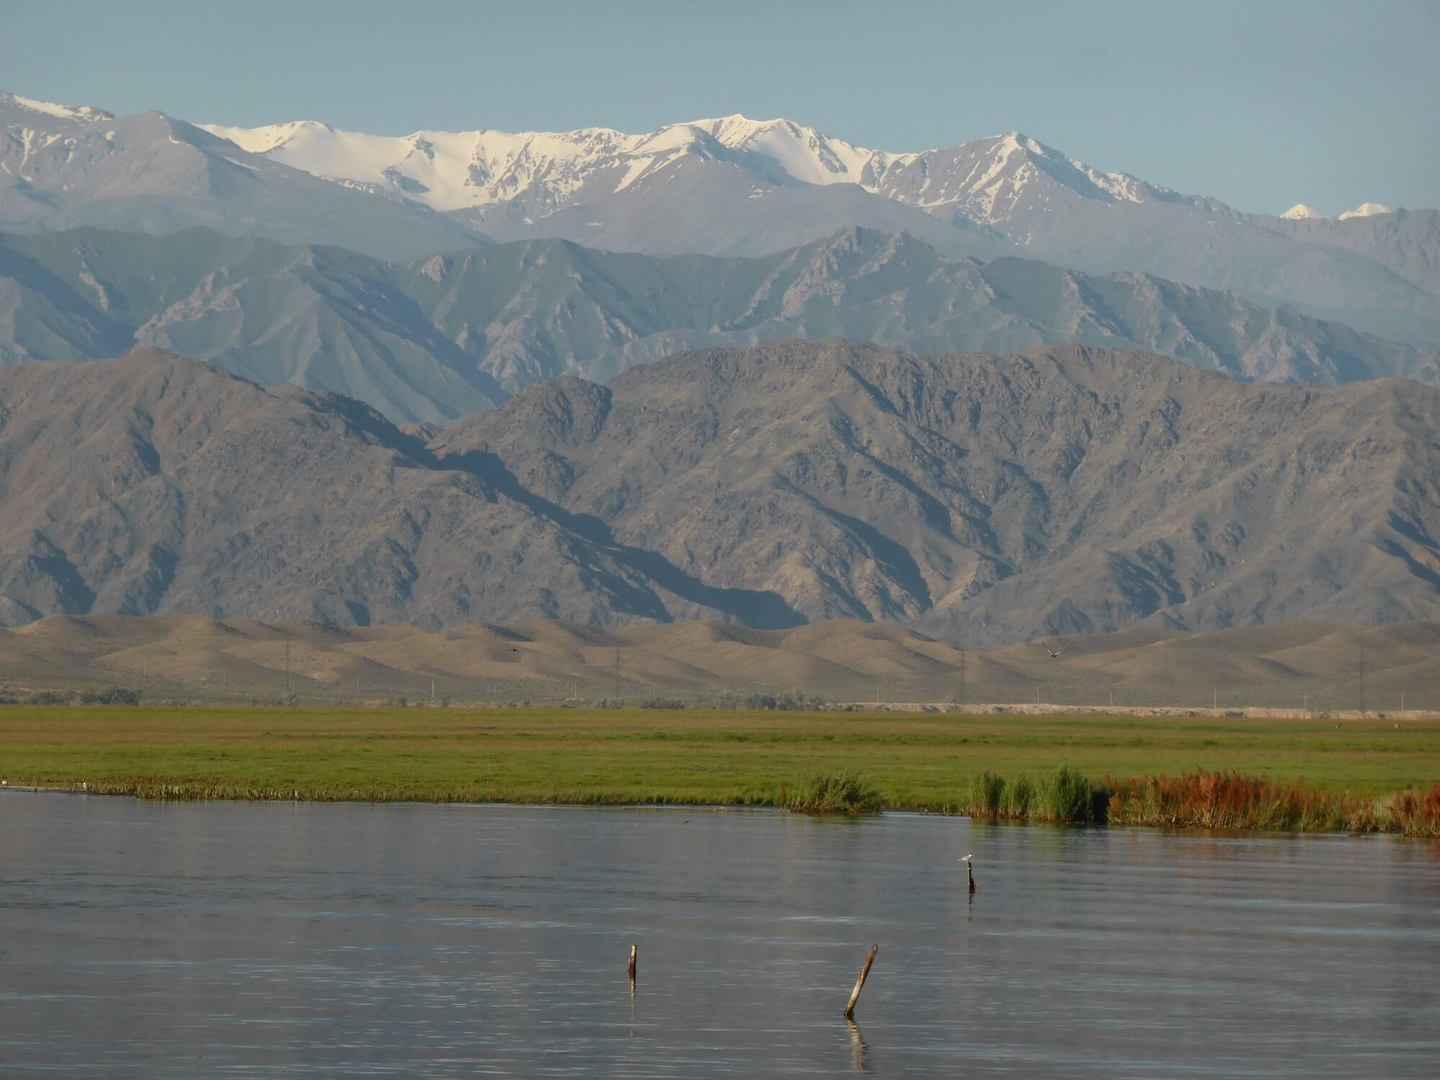 view of Tian Shan mountains and Issyk Kul, one of the Kyrgyzstan tourist spots